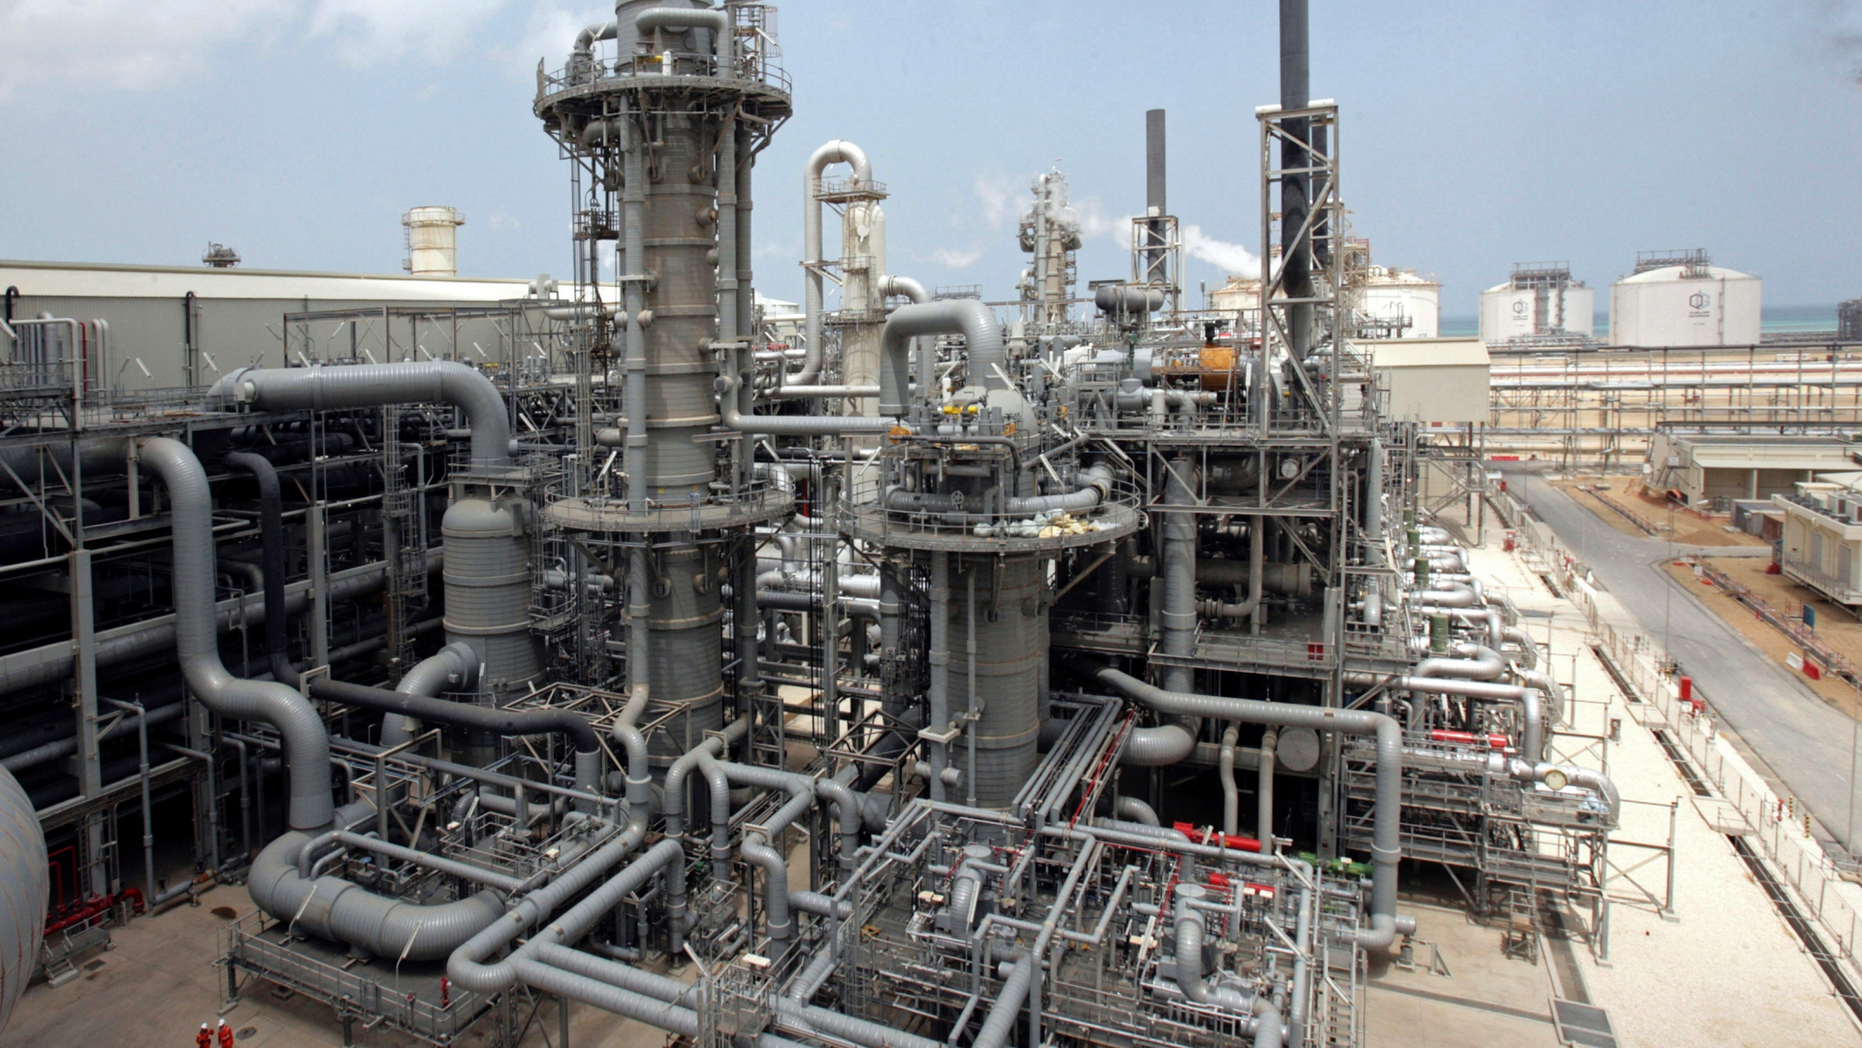 FILE - This April 4, 2009, file photo, shows a gas production facility at Ras Laffan, Qatar. The tiny, energy-rich Arab nation of Qatar announced on Monday, Dec. 3, 2018 it would withdraw from OPEC, mixing its aspirations to increase production outside of the cartel's constraints with the politics of slighting the Saudi-dominated group amid the kingdom's boycott of Doha. (AP Photos/Maneesh Bakshi, File)